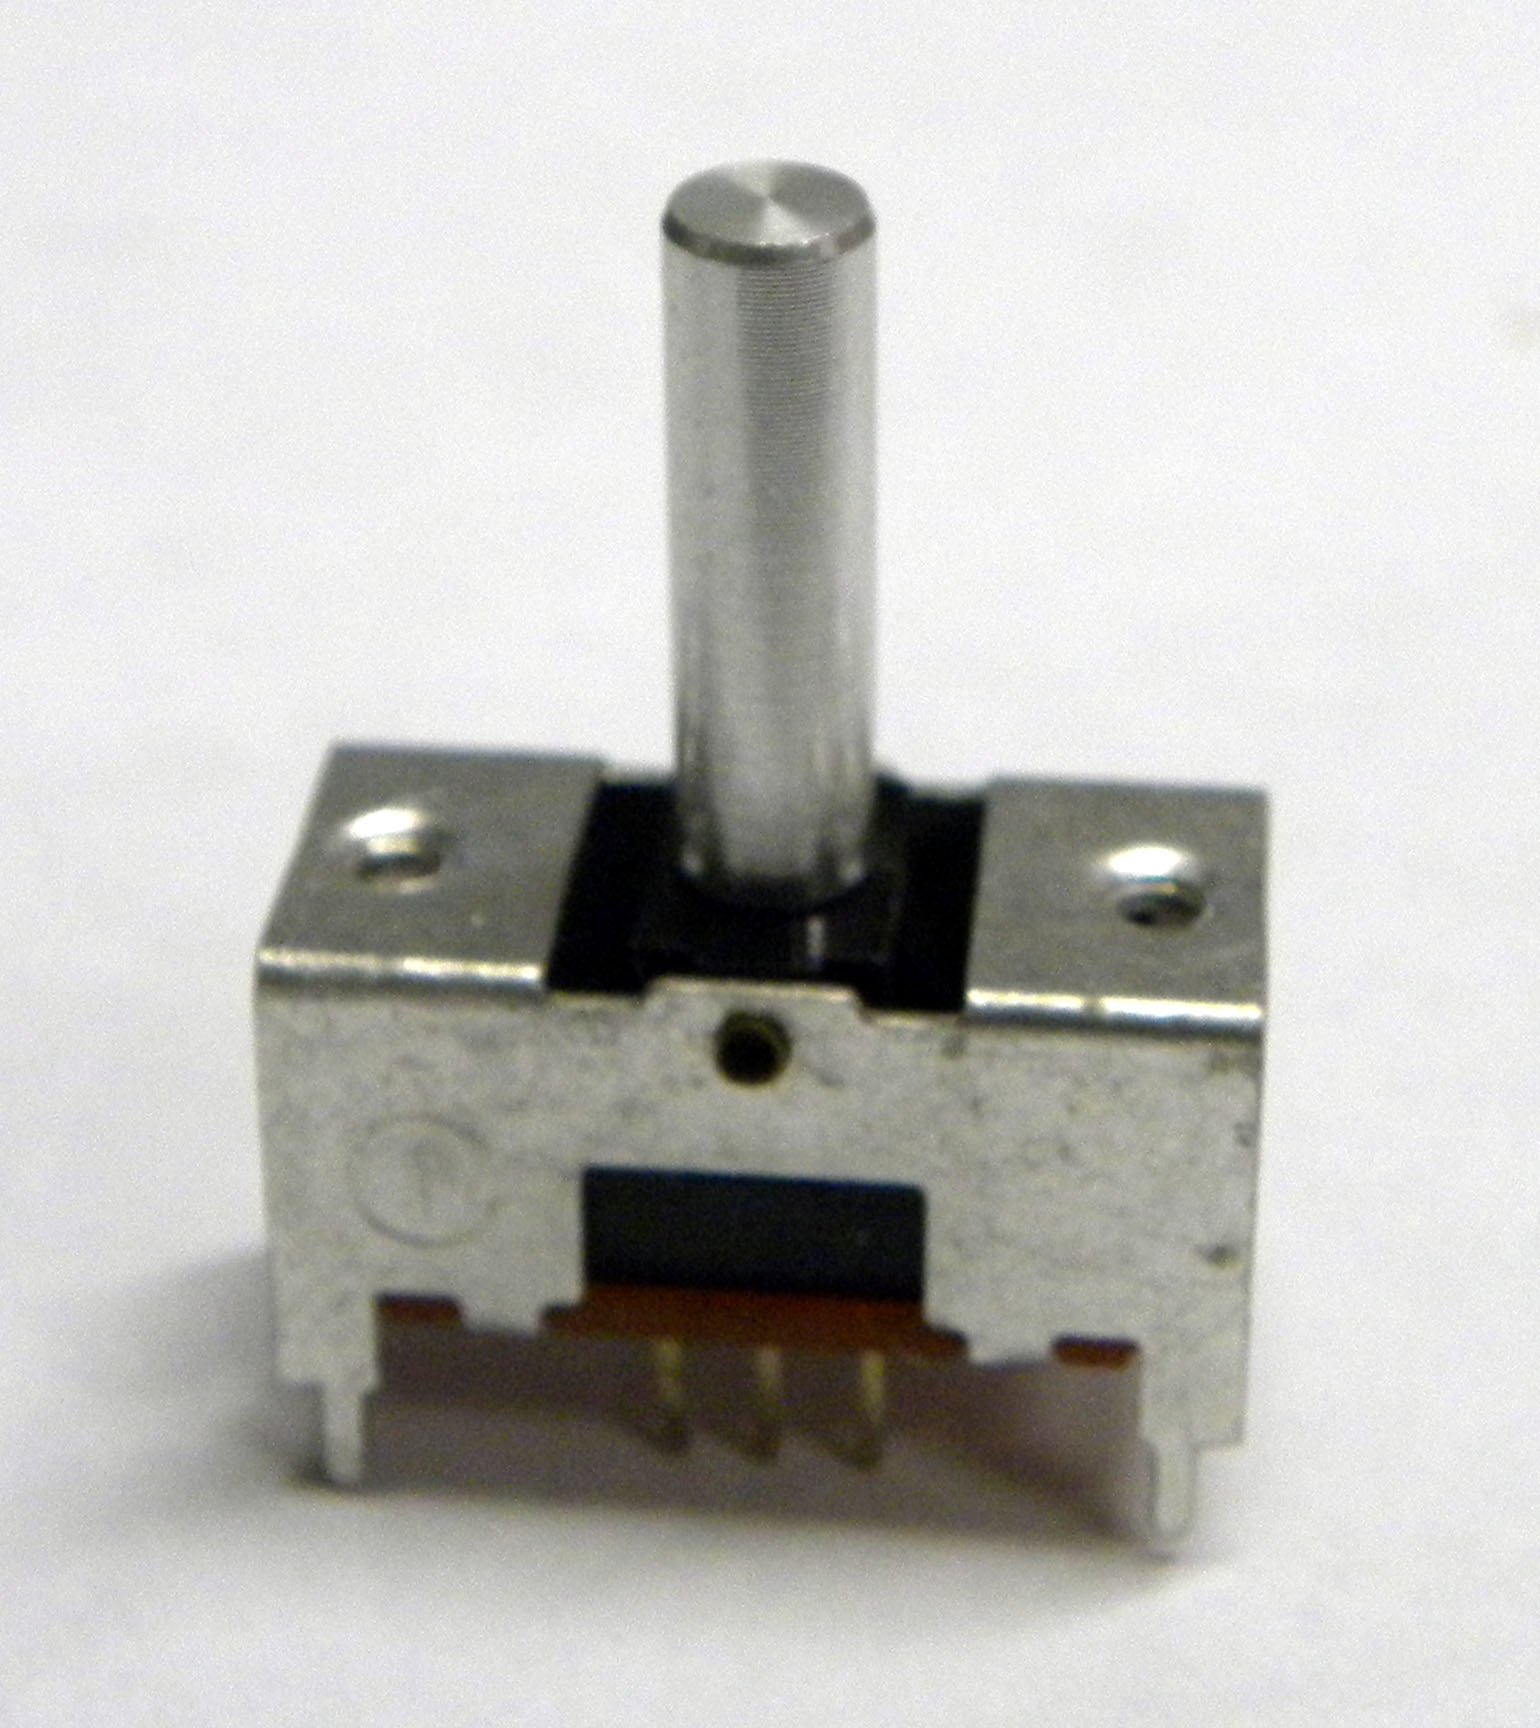 PCV-002 - INPUT SELECT SWITCH, PCV-175 - EFFECT ON/OFF 2 position switch